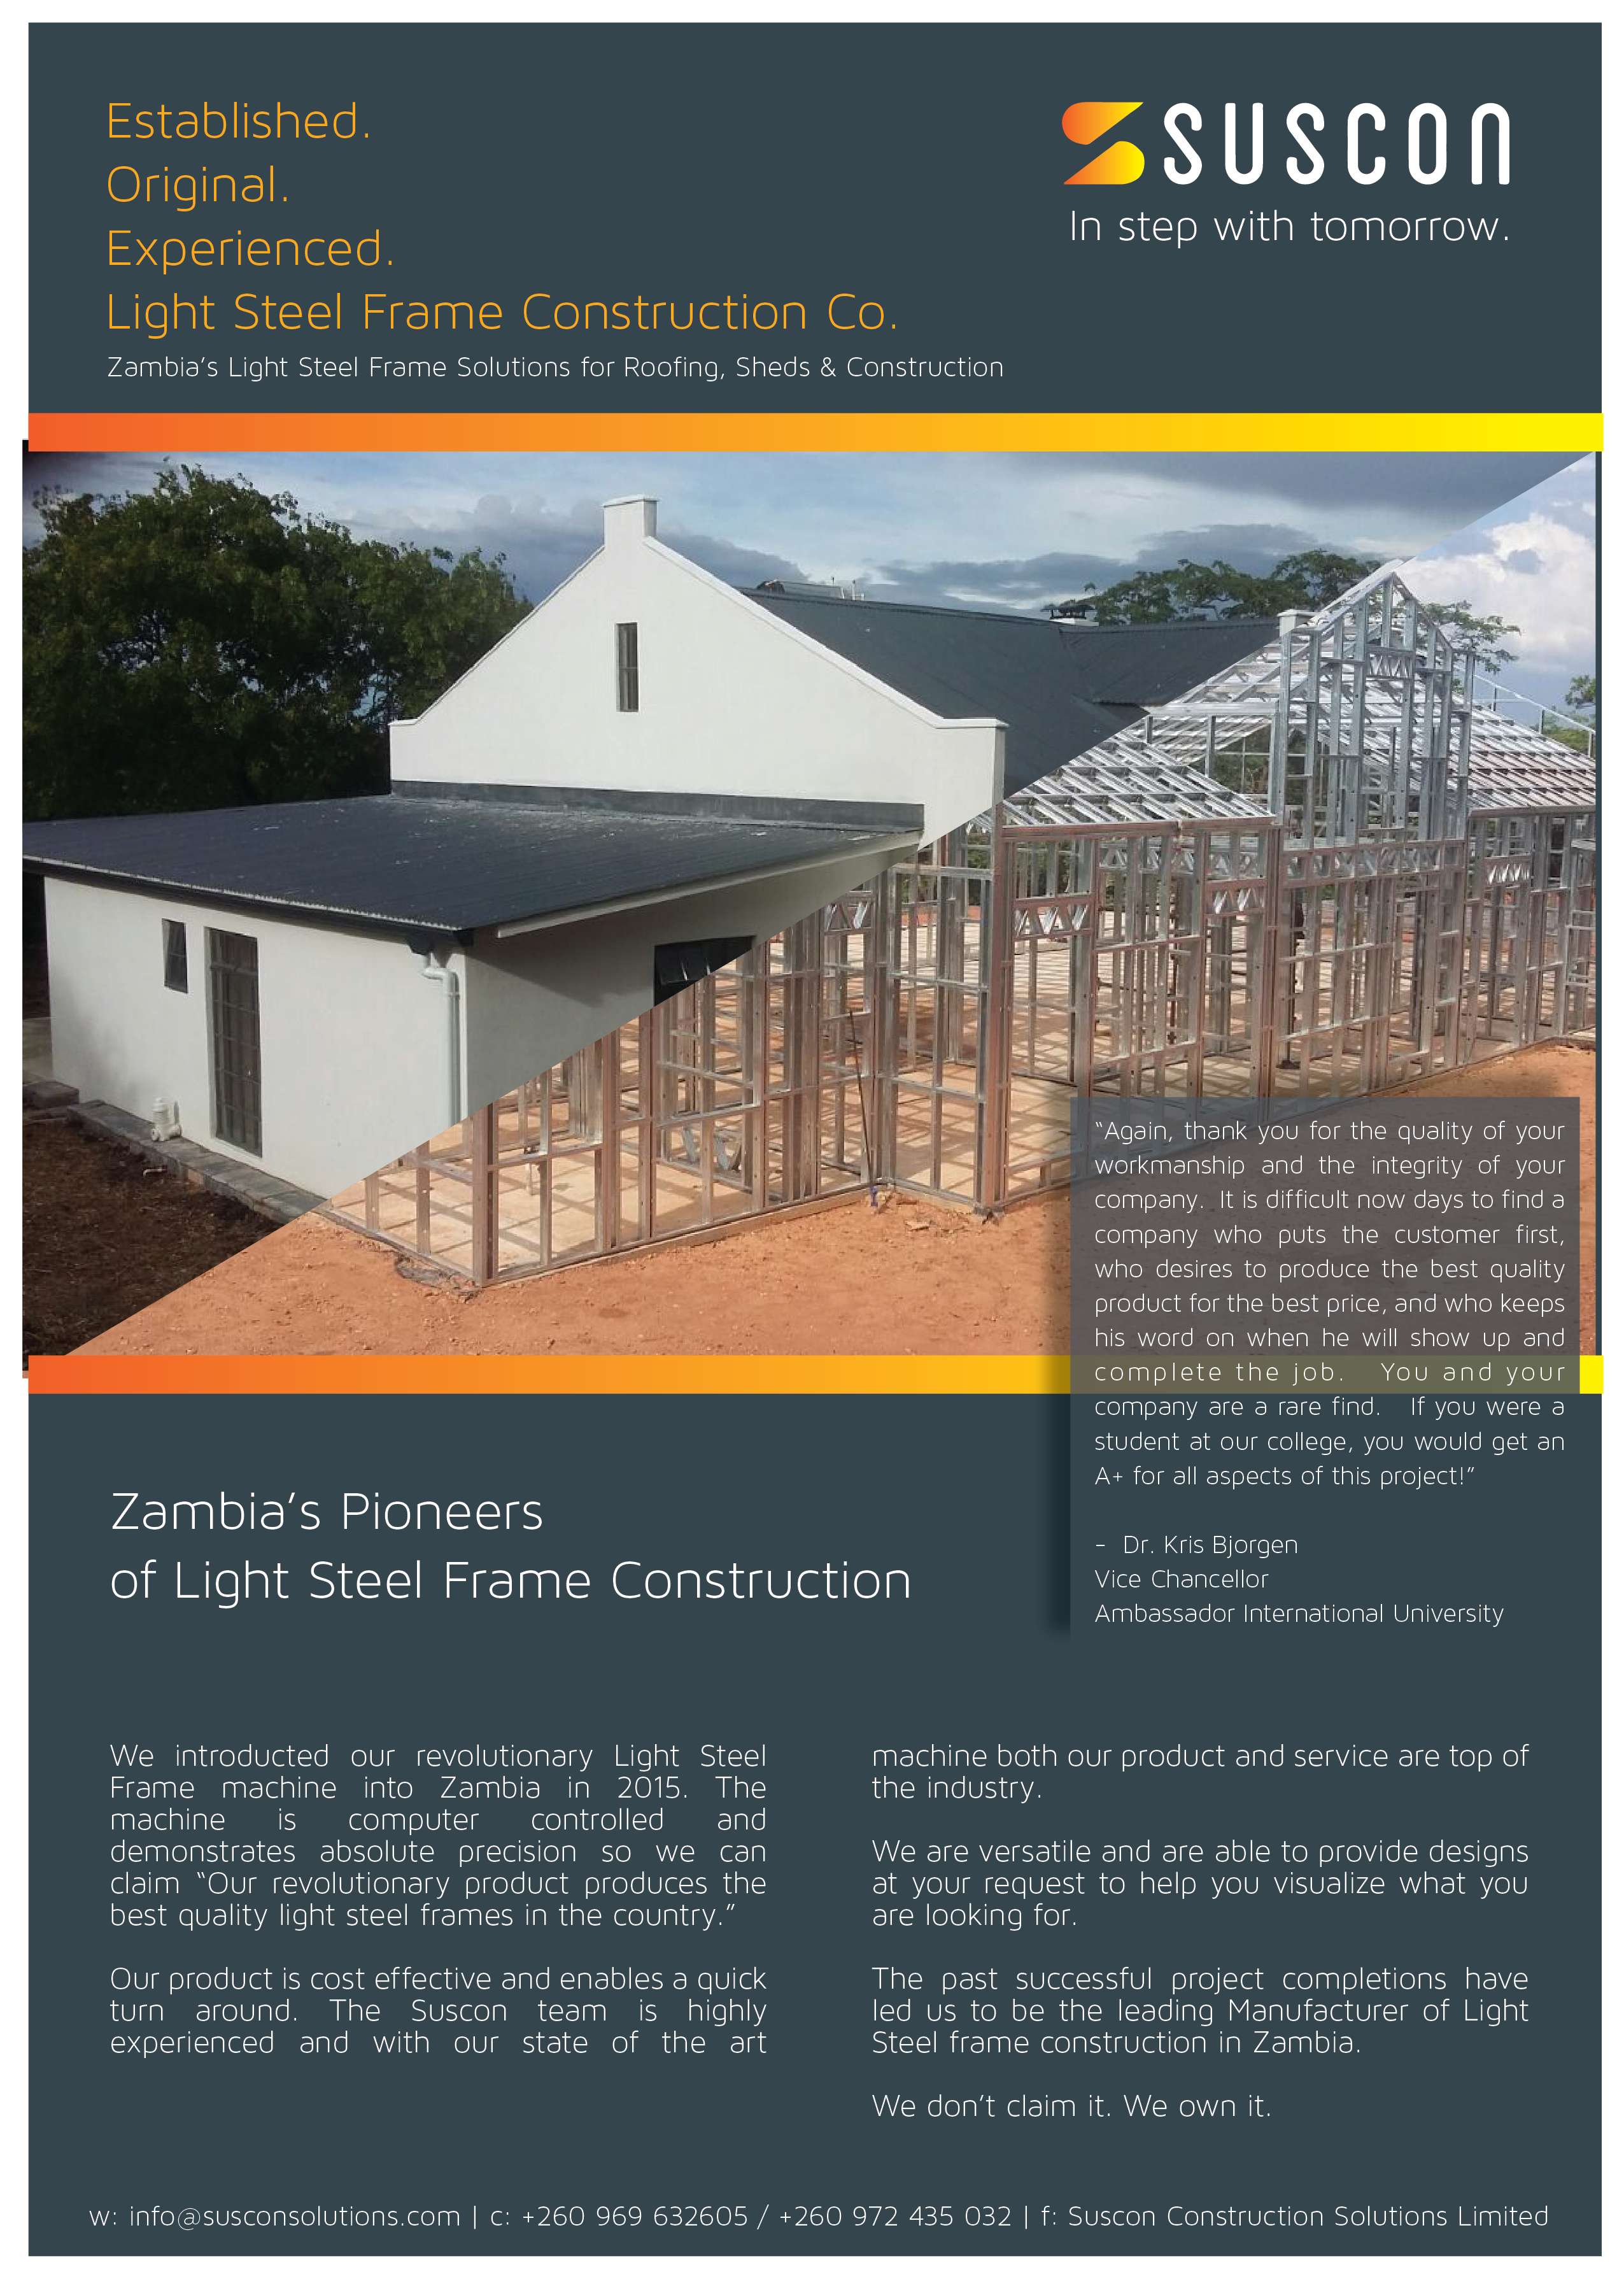 23.01.2017 - SUSCON – LIGHT STEEL FRAME CONSTRUCTION » Ad-dicts! In ...